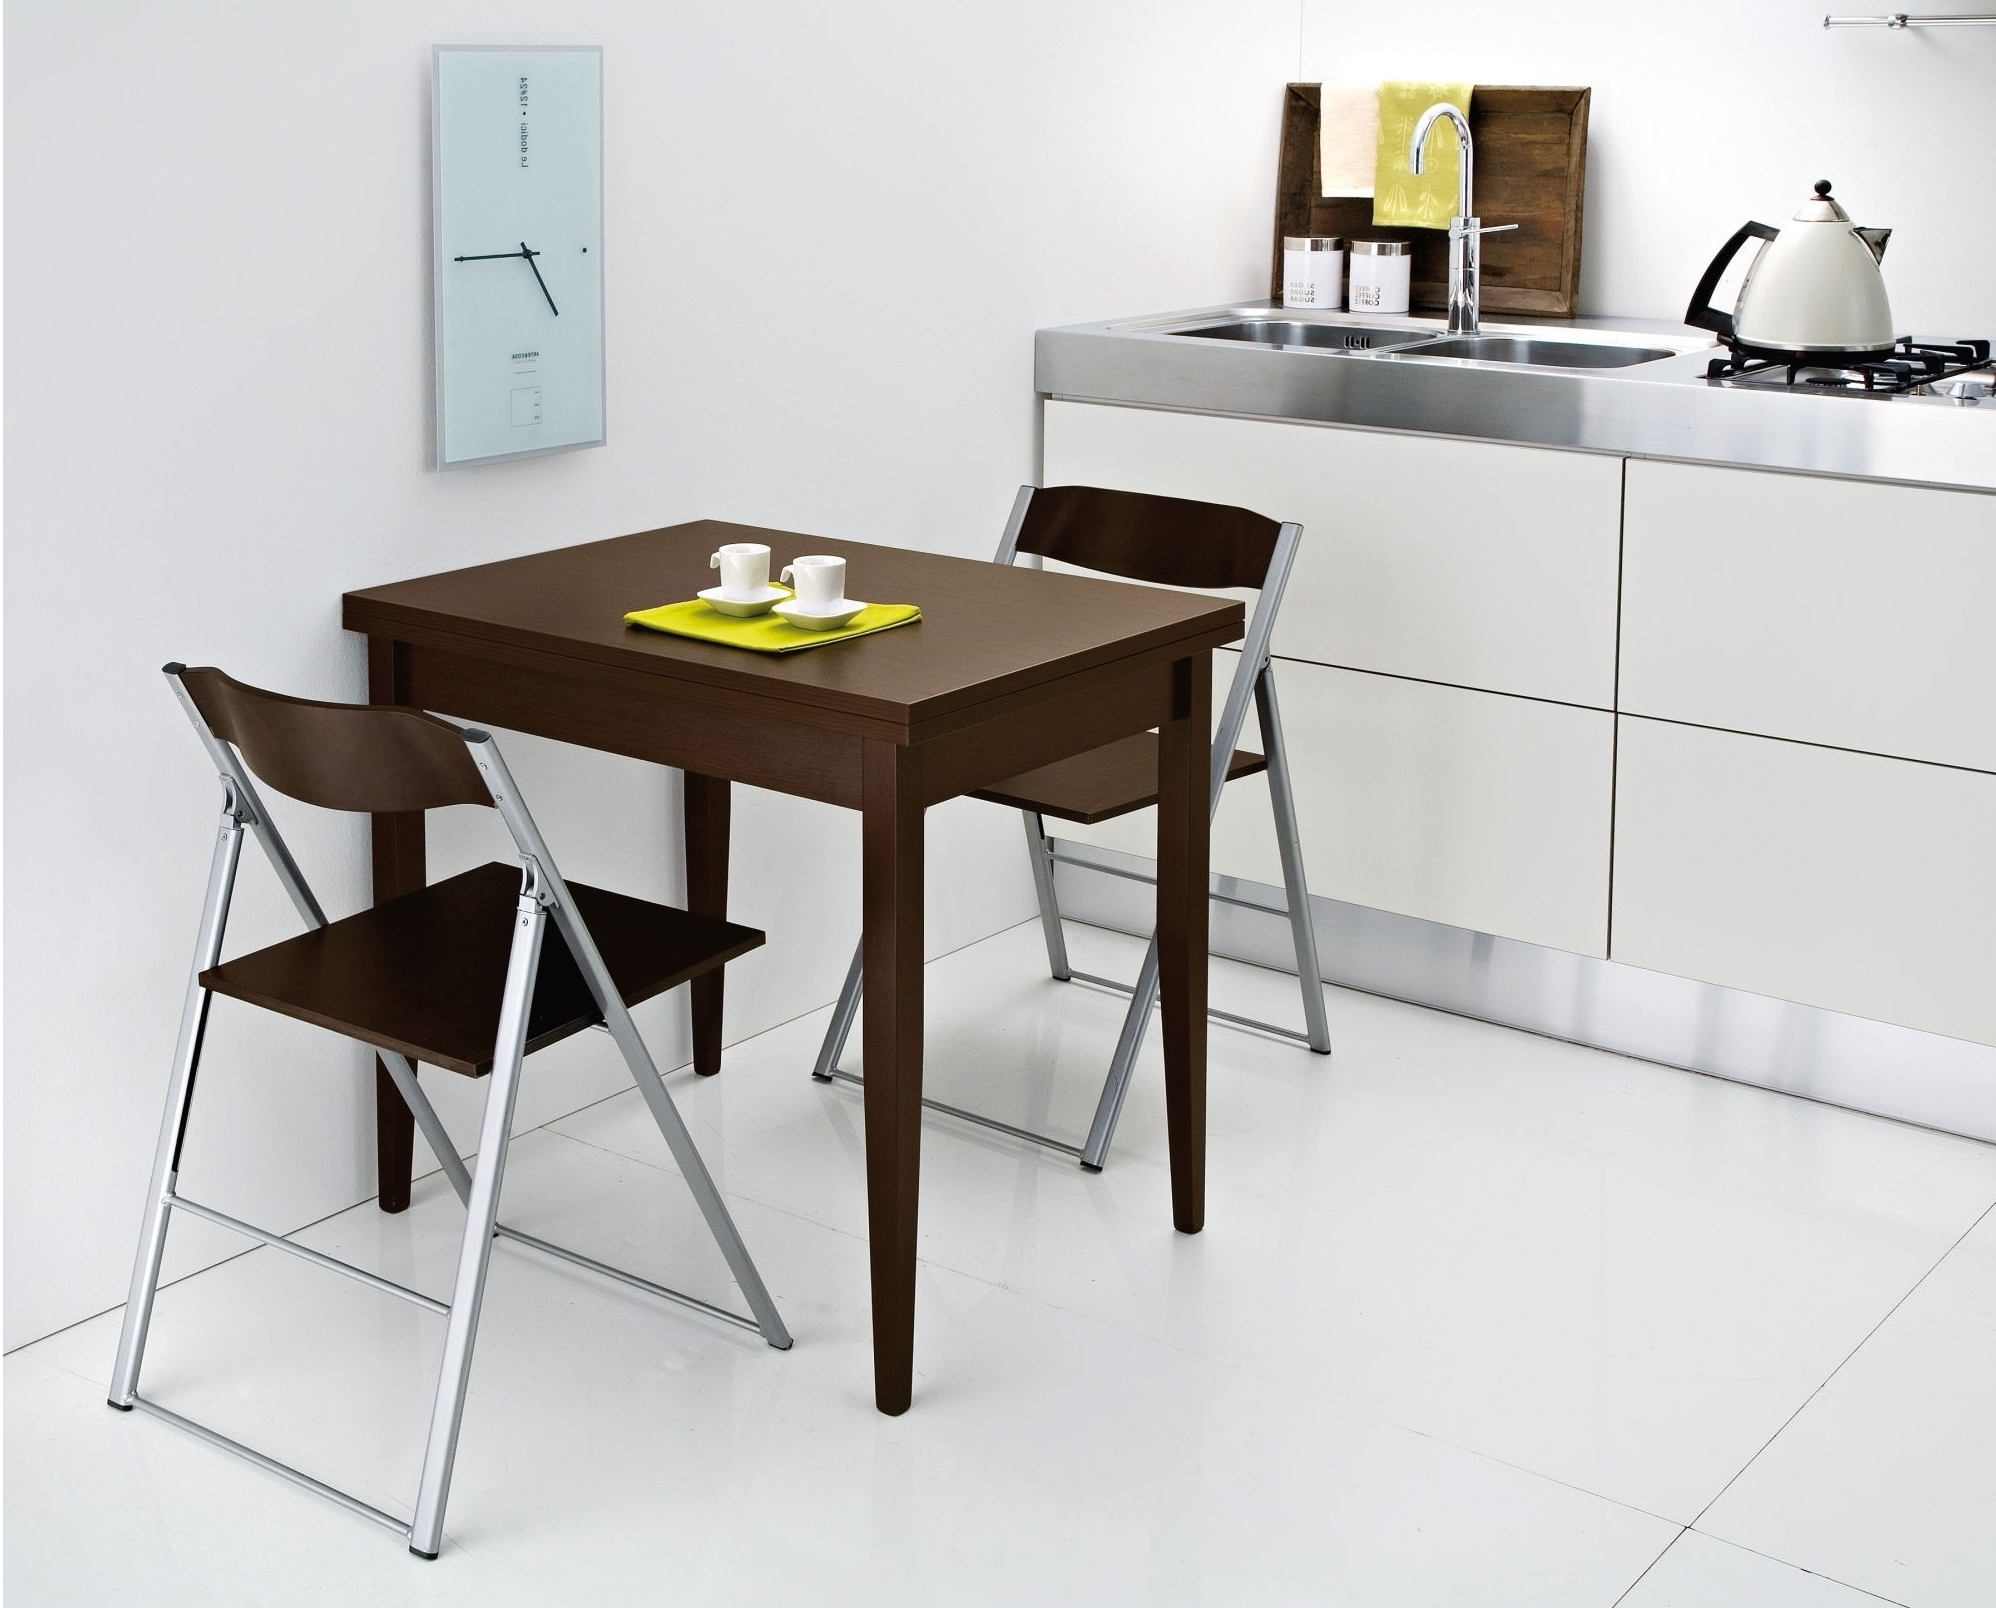 Minimalist Folding Tables And Chairs For Apartment Dining Room (Image 10 of 20)